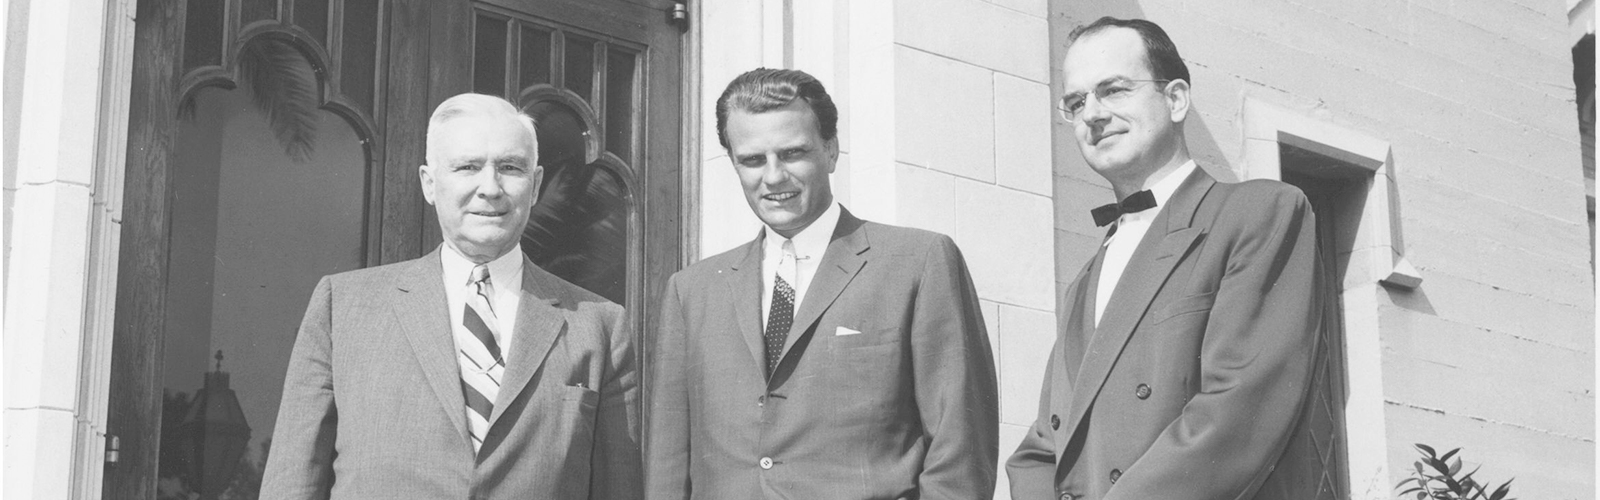 Billy Graham at Fuller